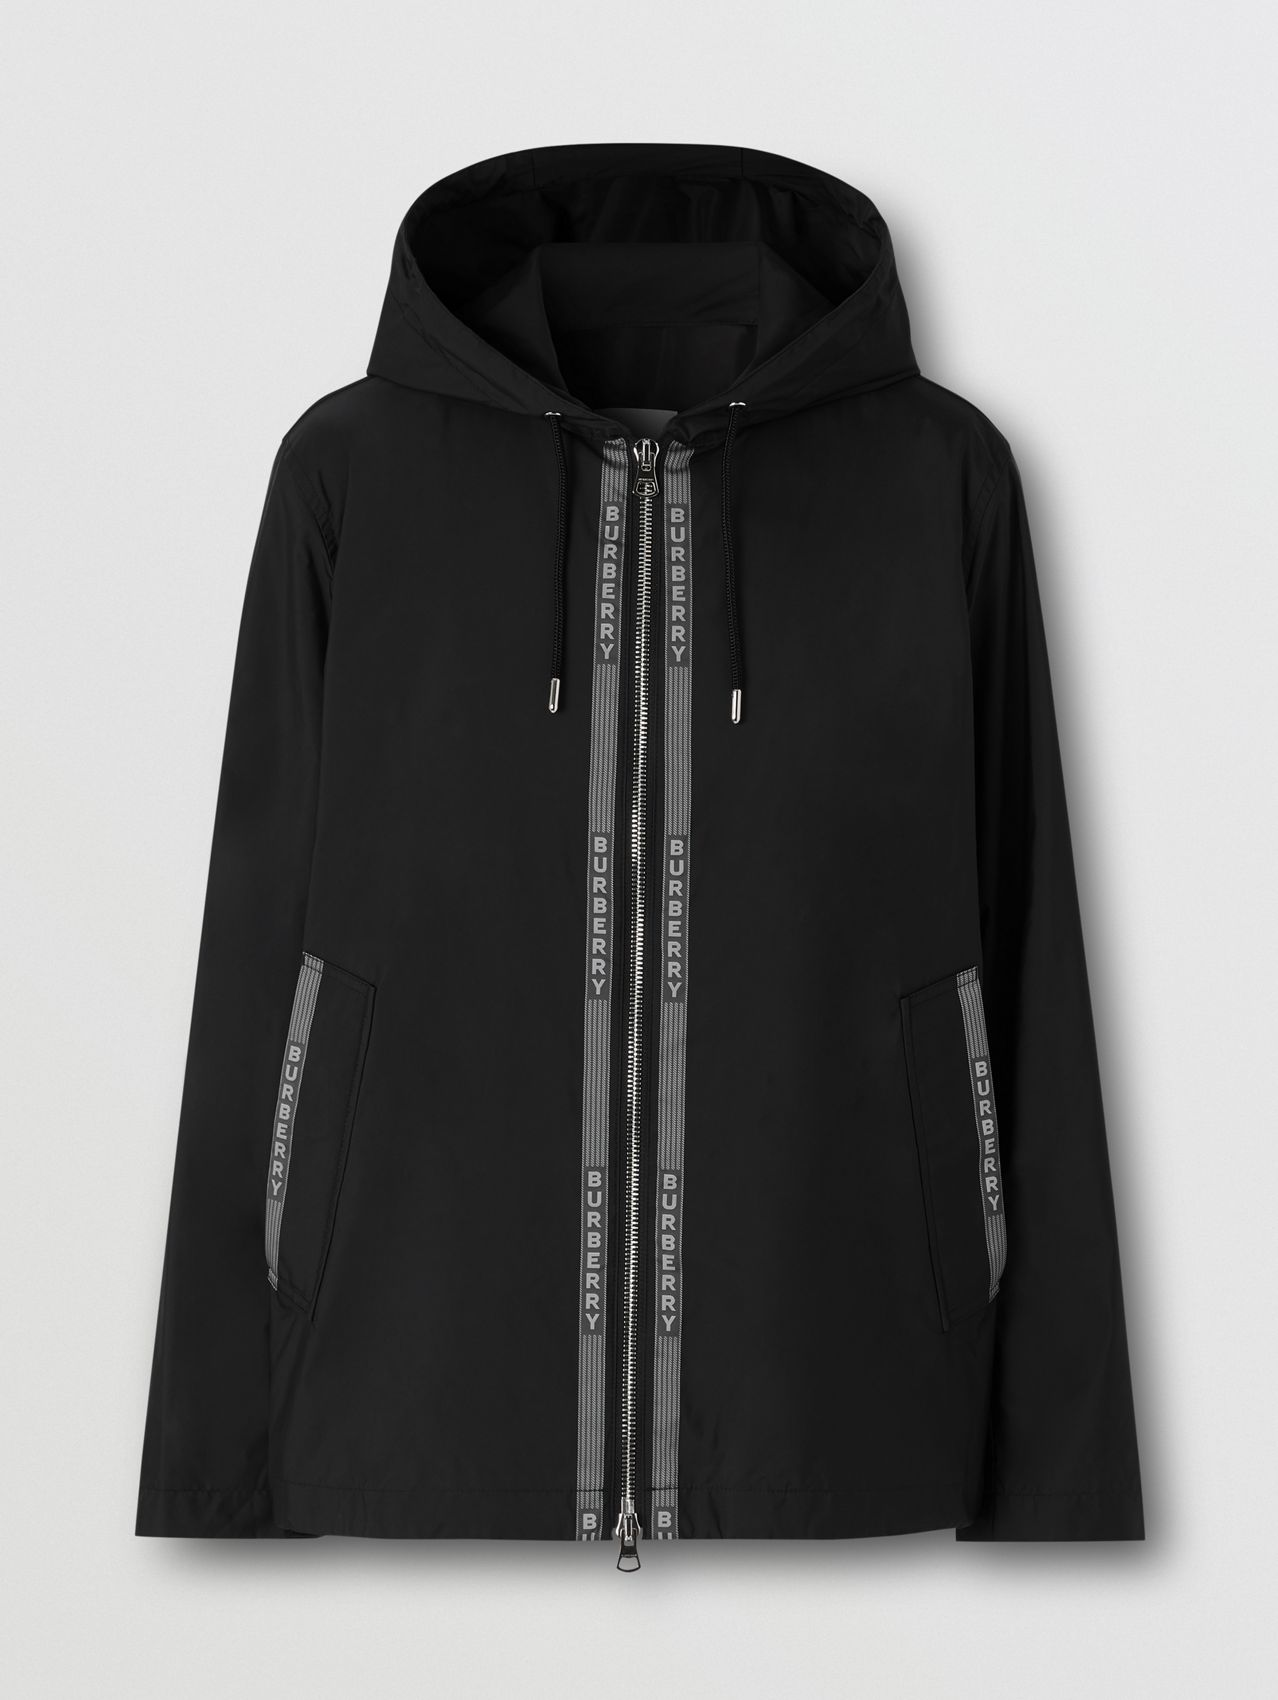 Logo Nylon Jacquard Hooded Jacket in Black/white